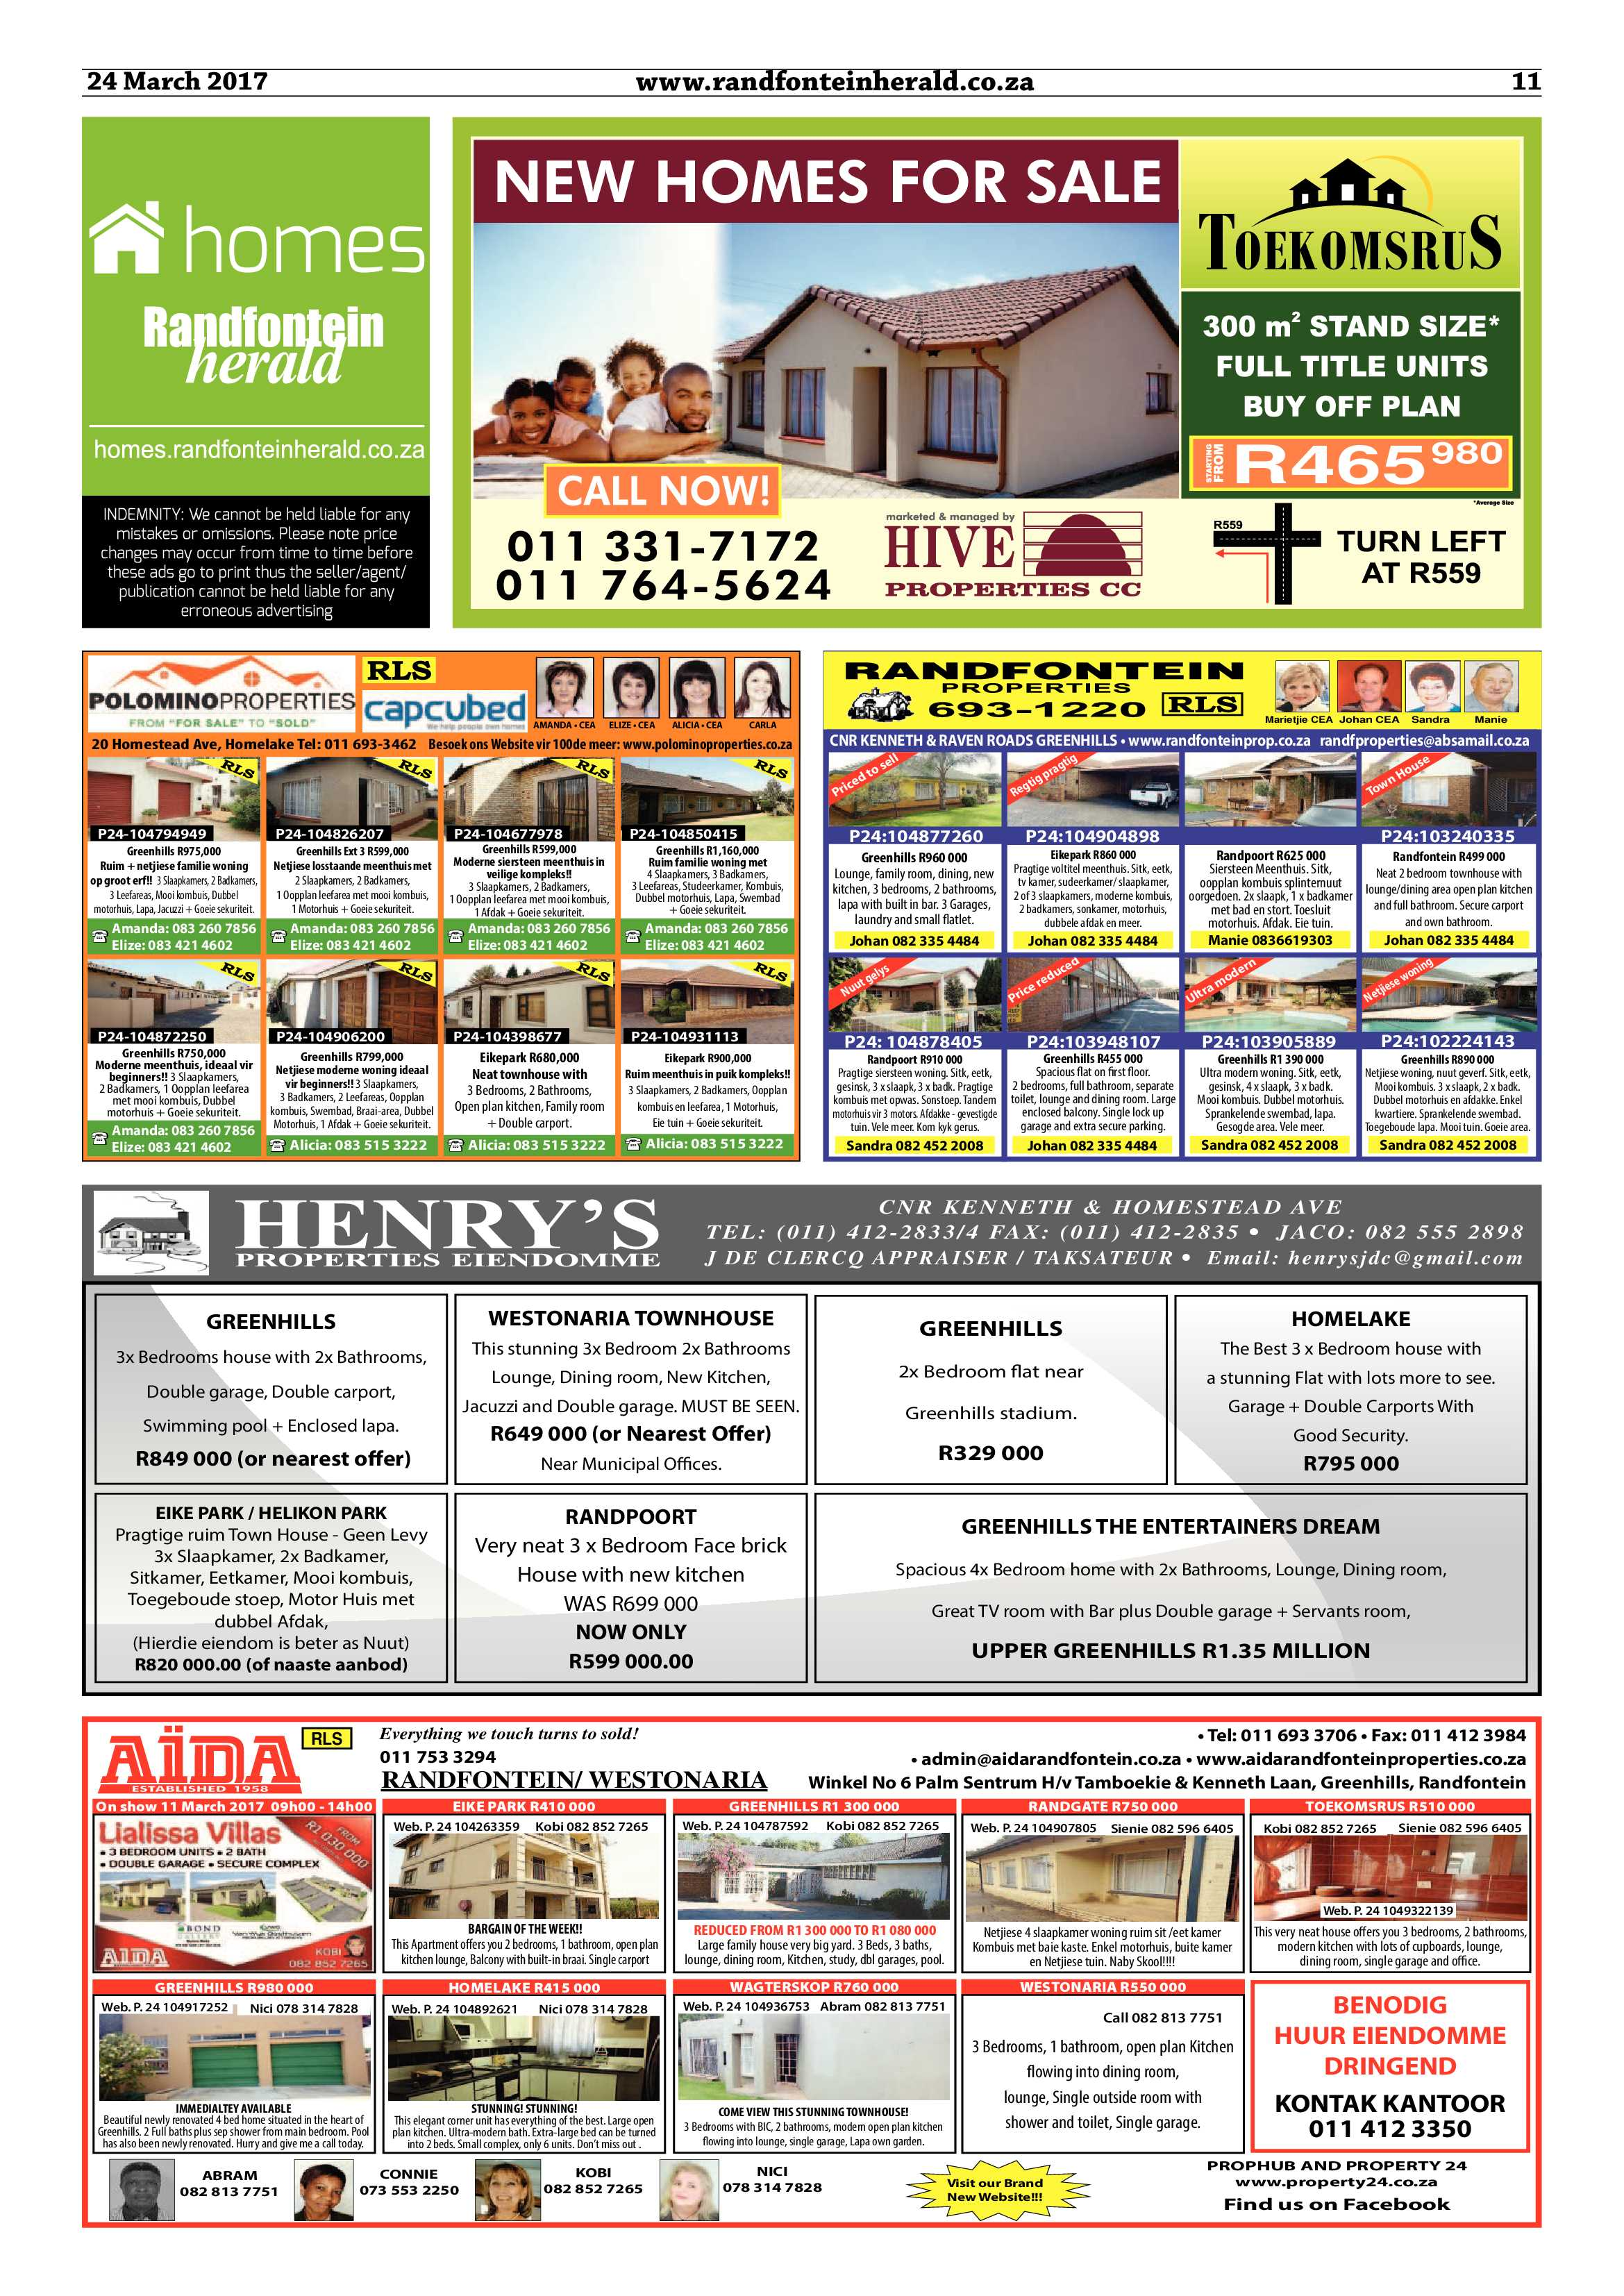 randfontein-herald-24-march-2017-epapers-page-11